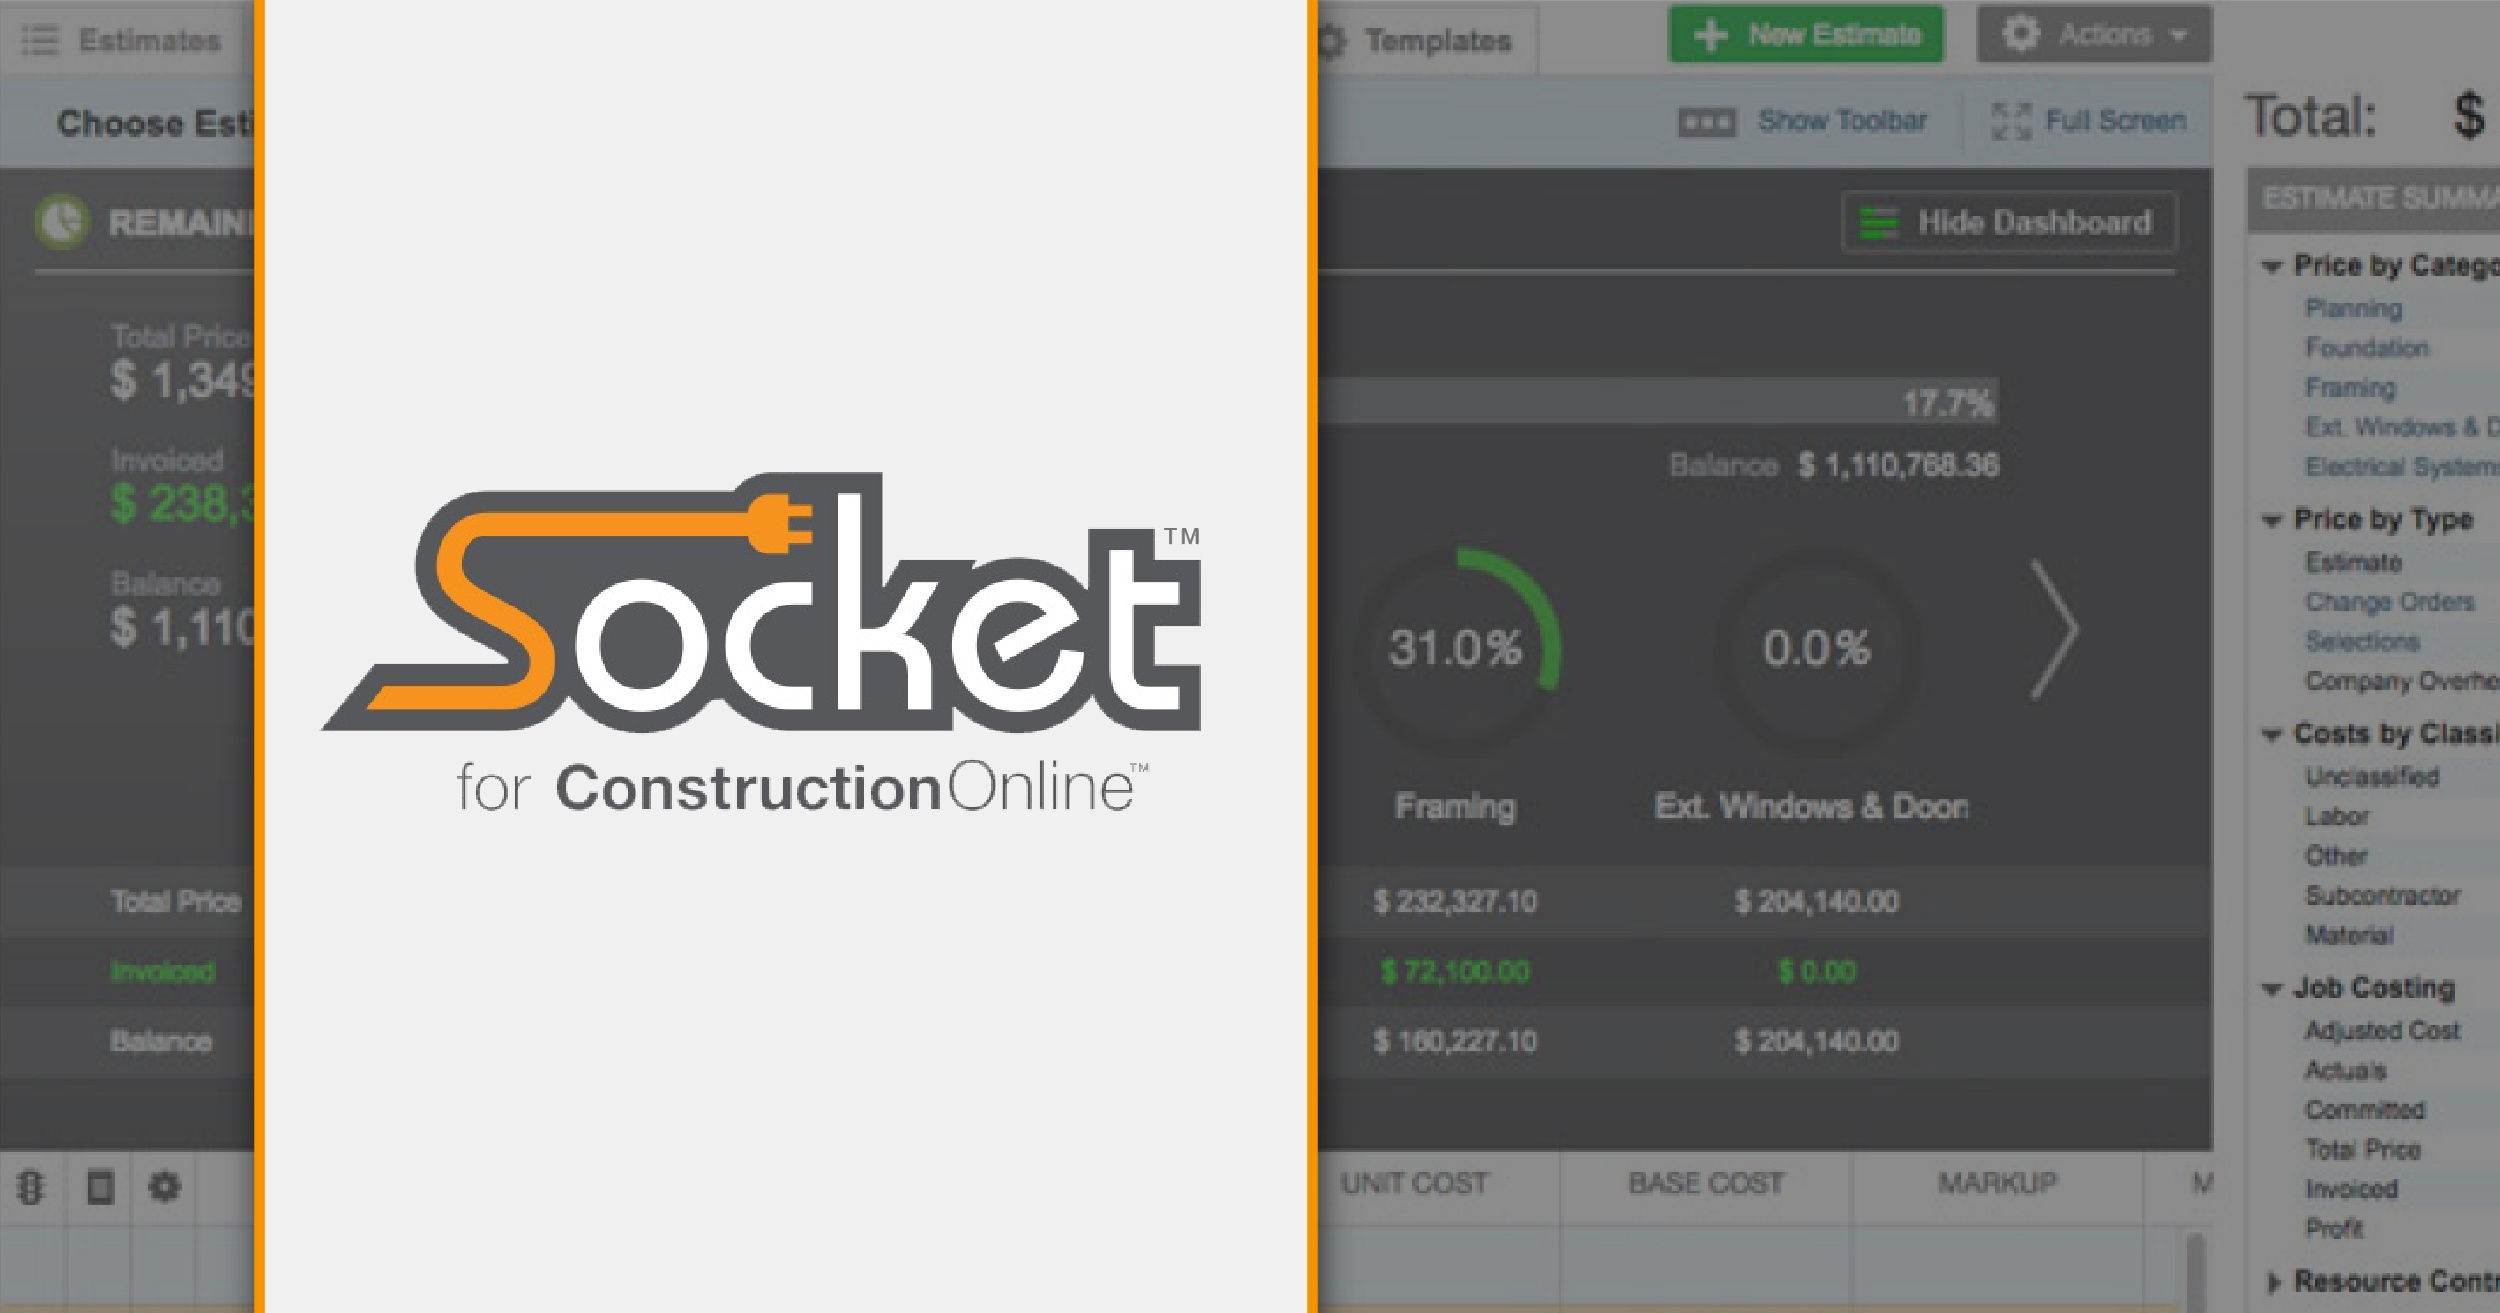 Meet Socket: ConstructionOnline's New Desktop Assistant